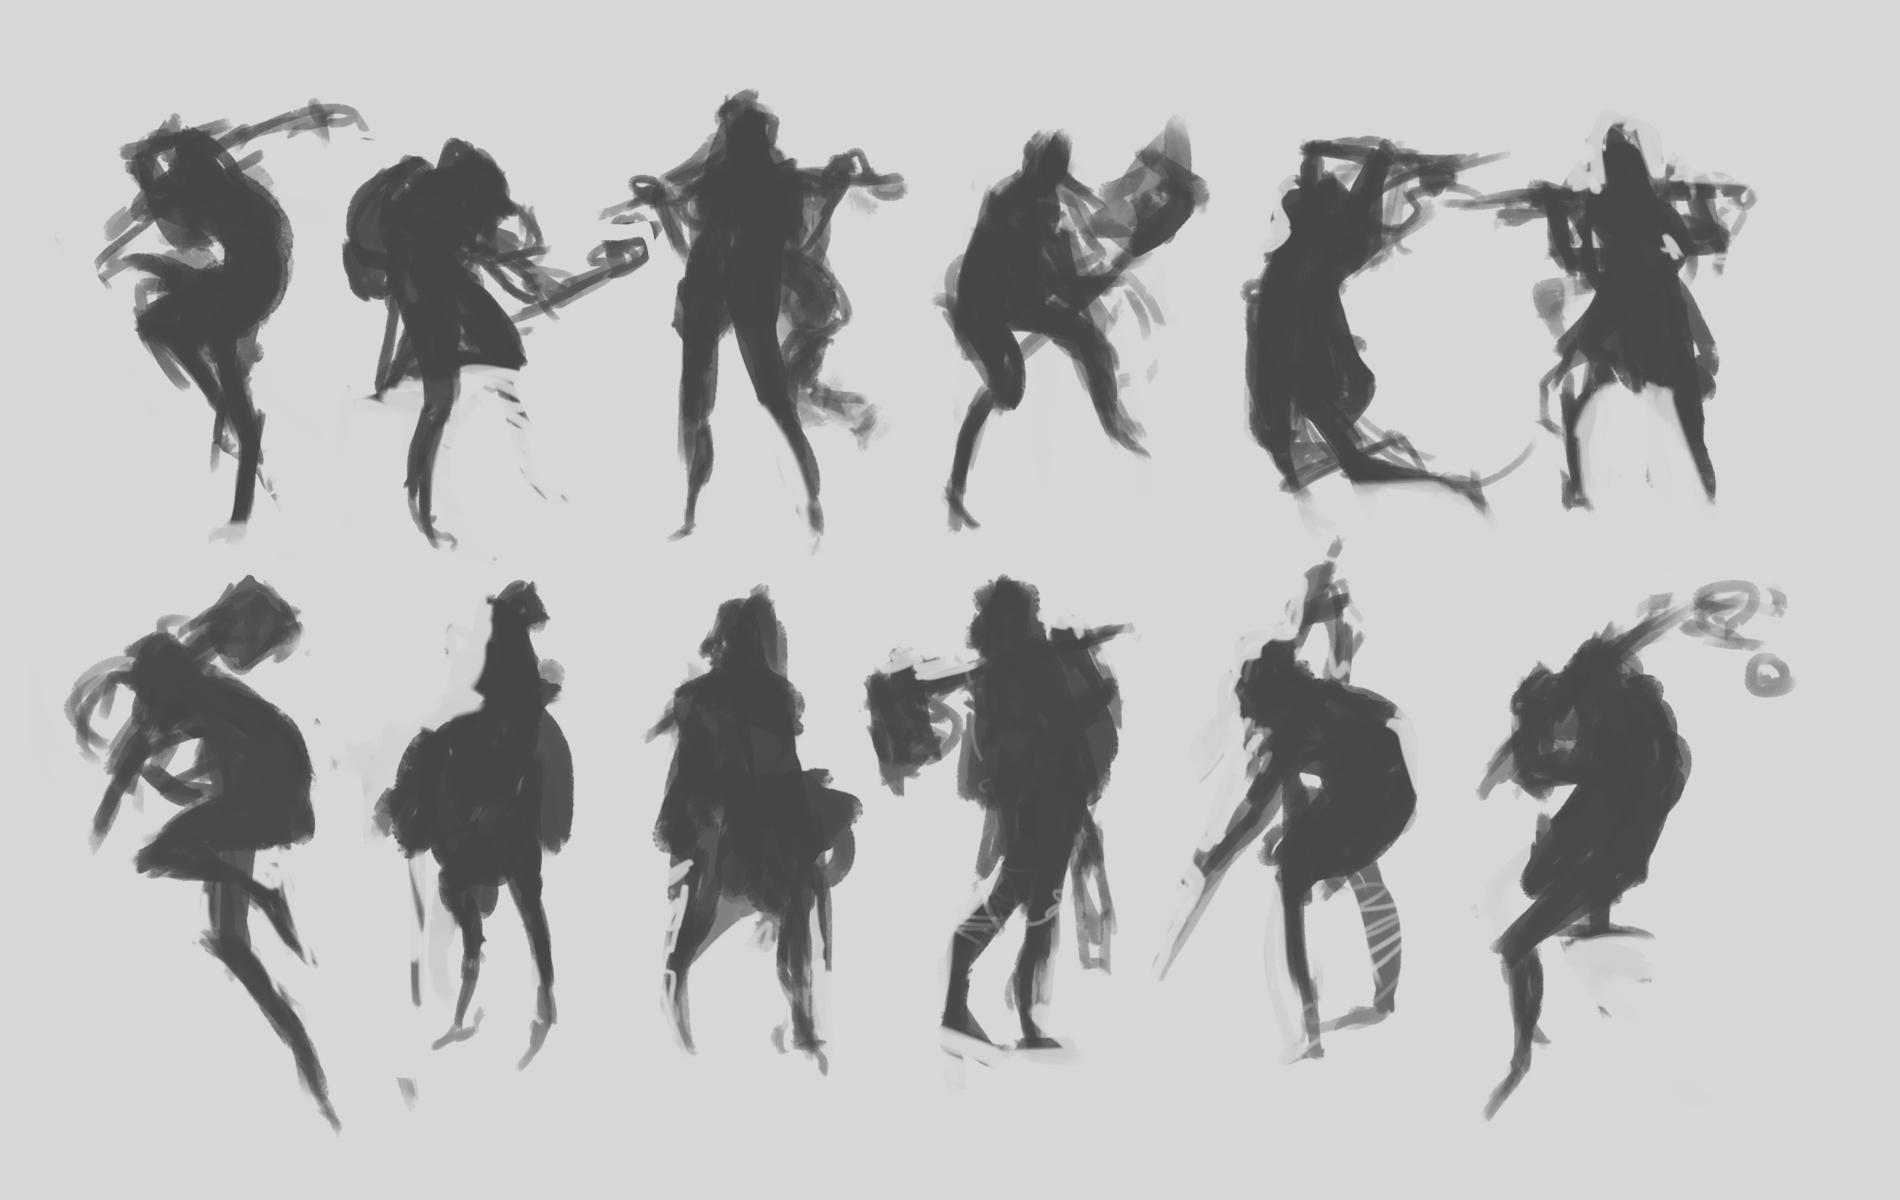 Character Concept Design Process : Character concept art from initial sketch to final design